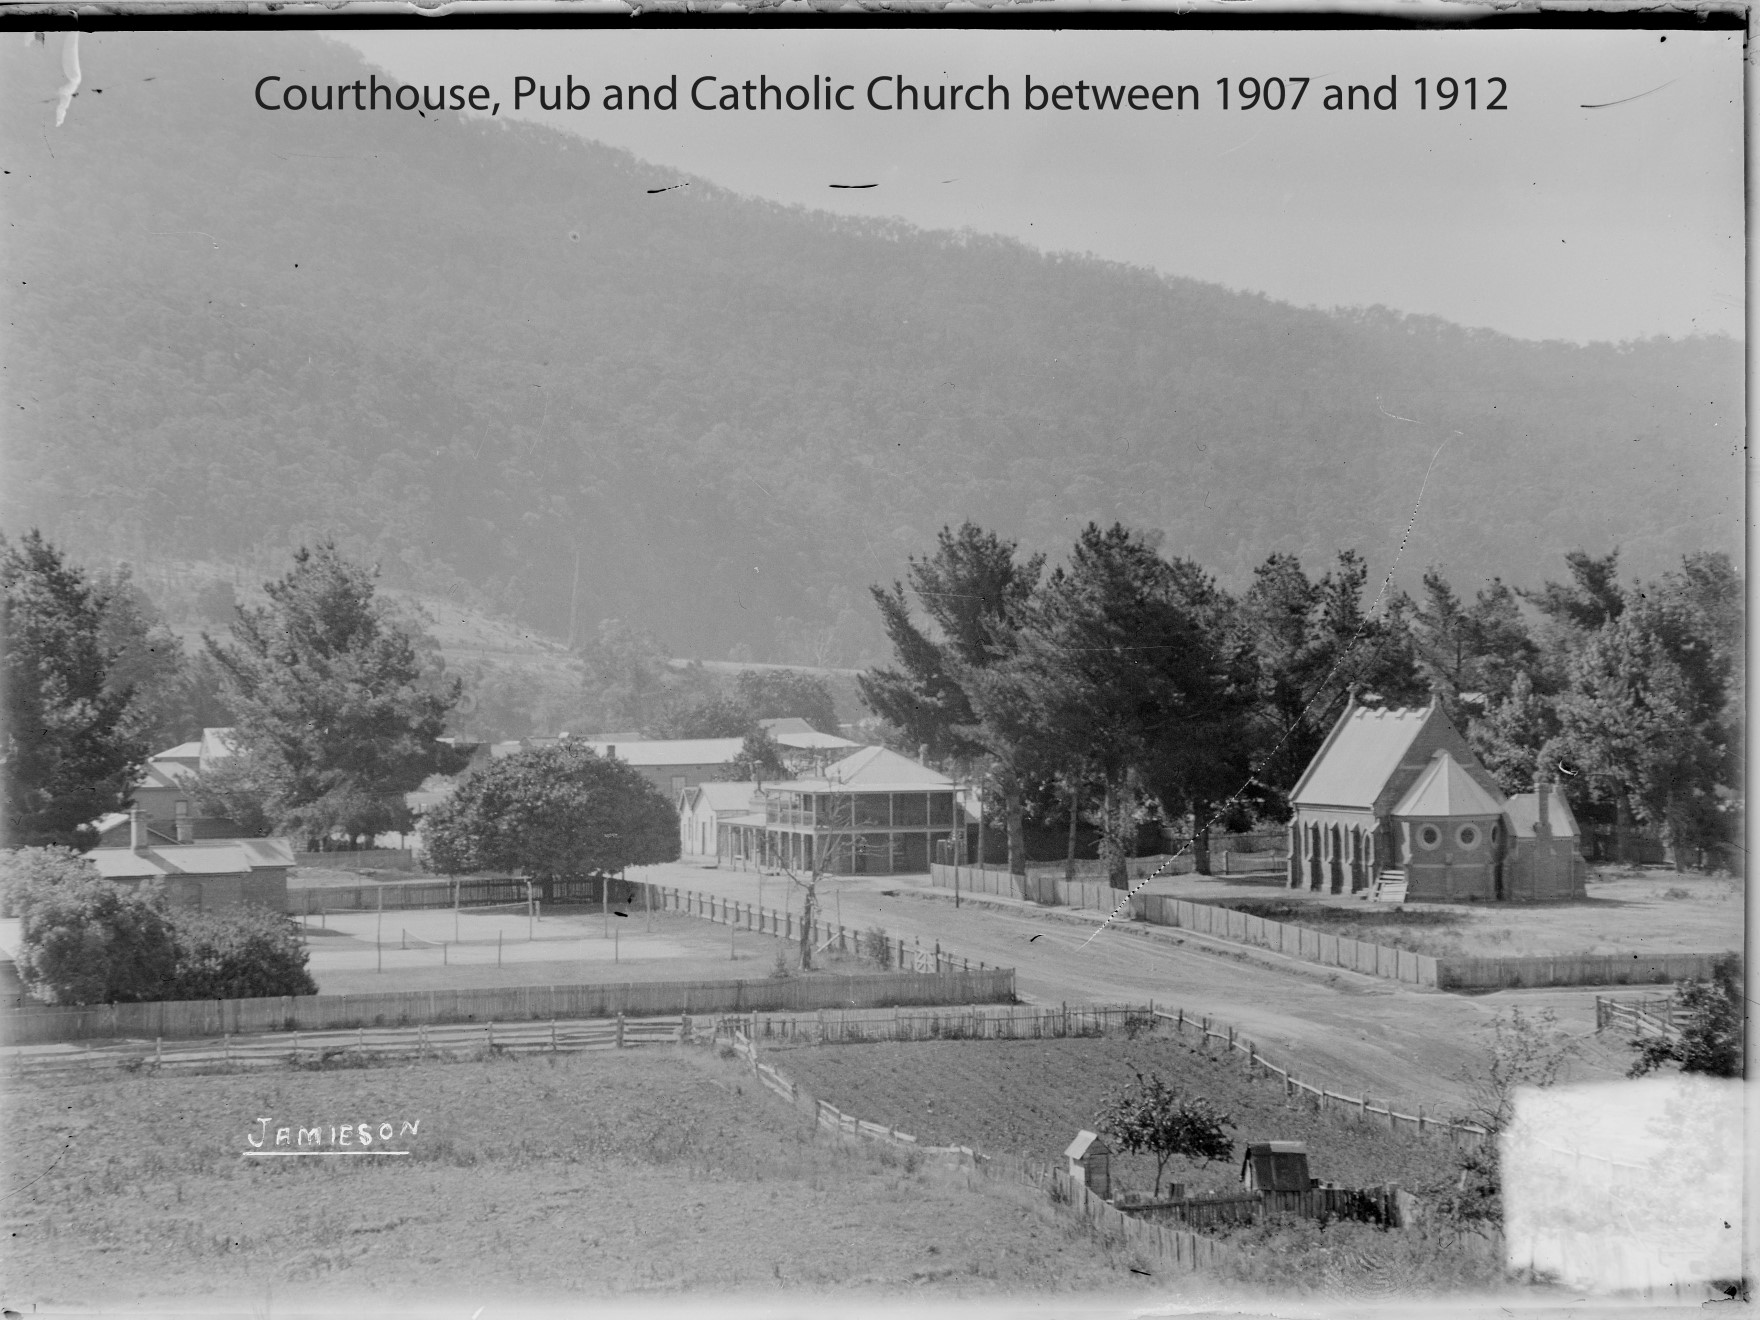 Catholic Church & Pub 1907-1912